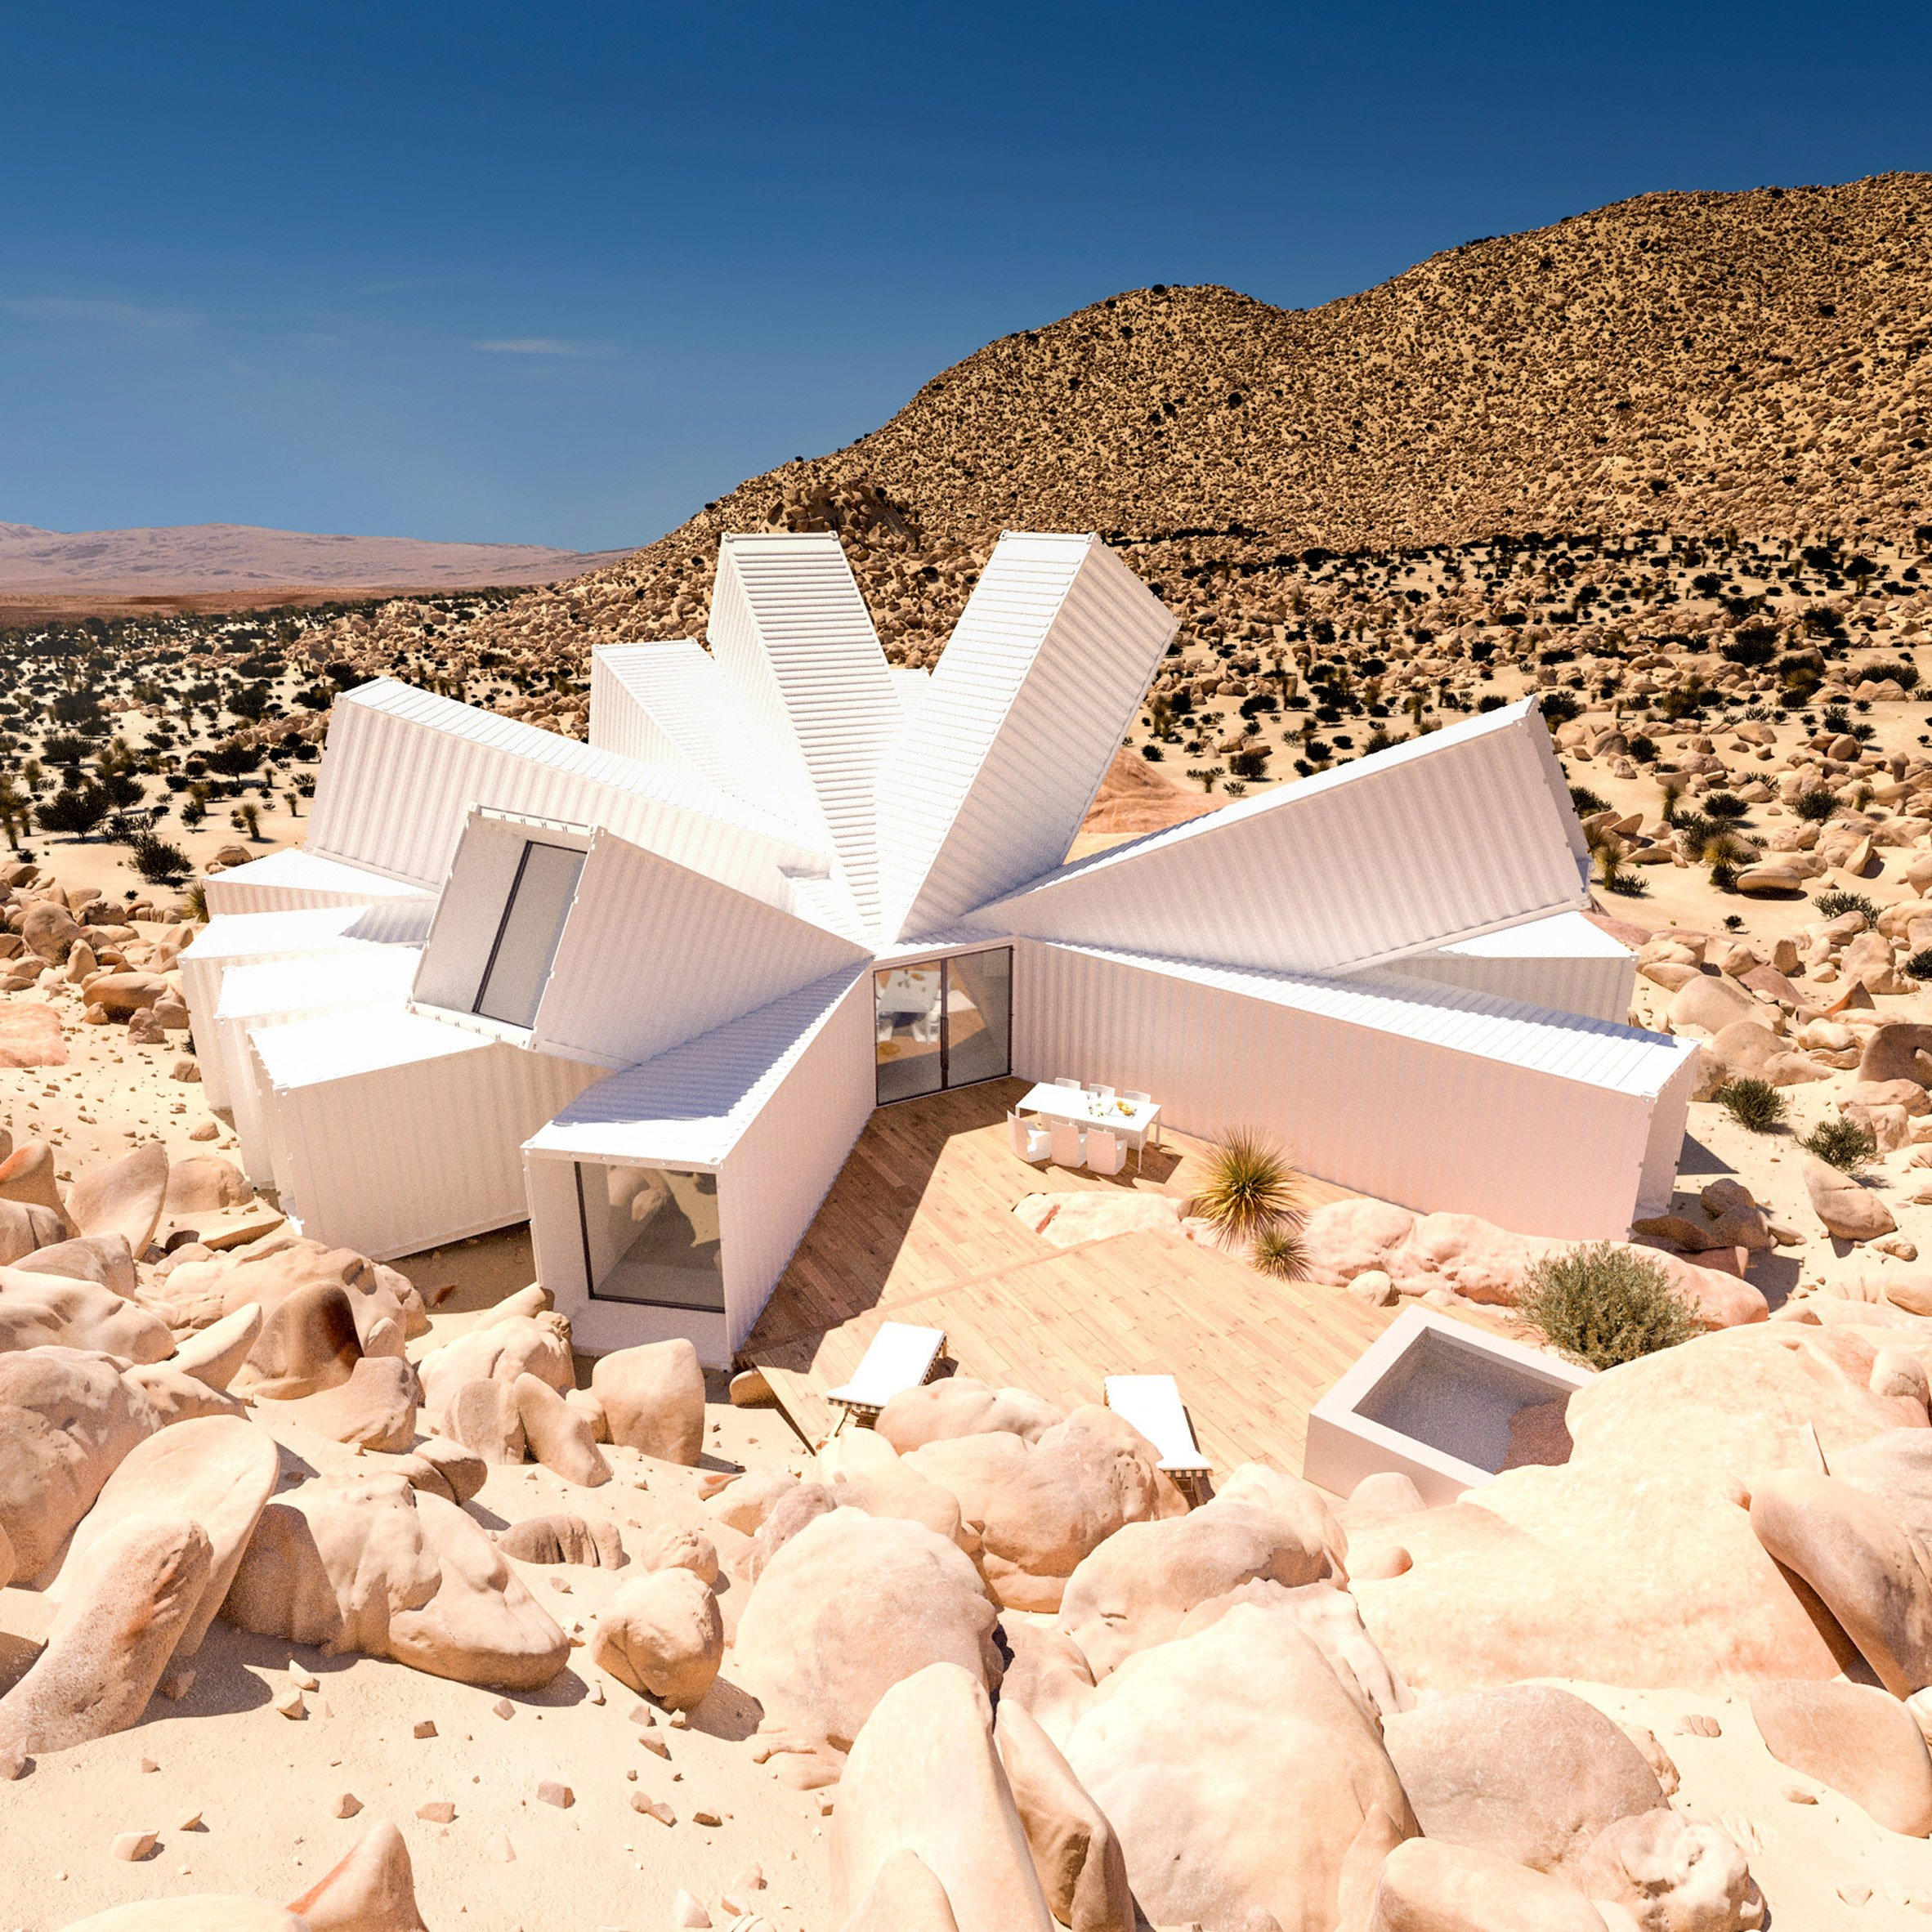 Splayed shipping containers form Joshua Tree